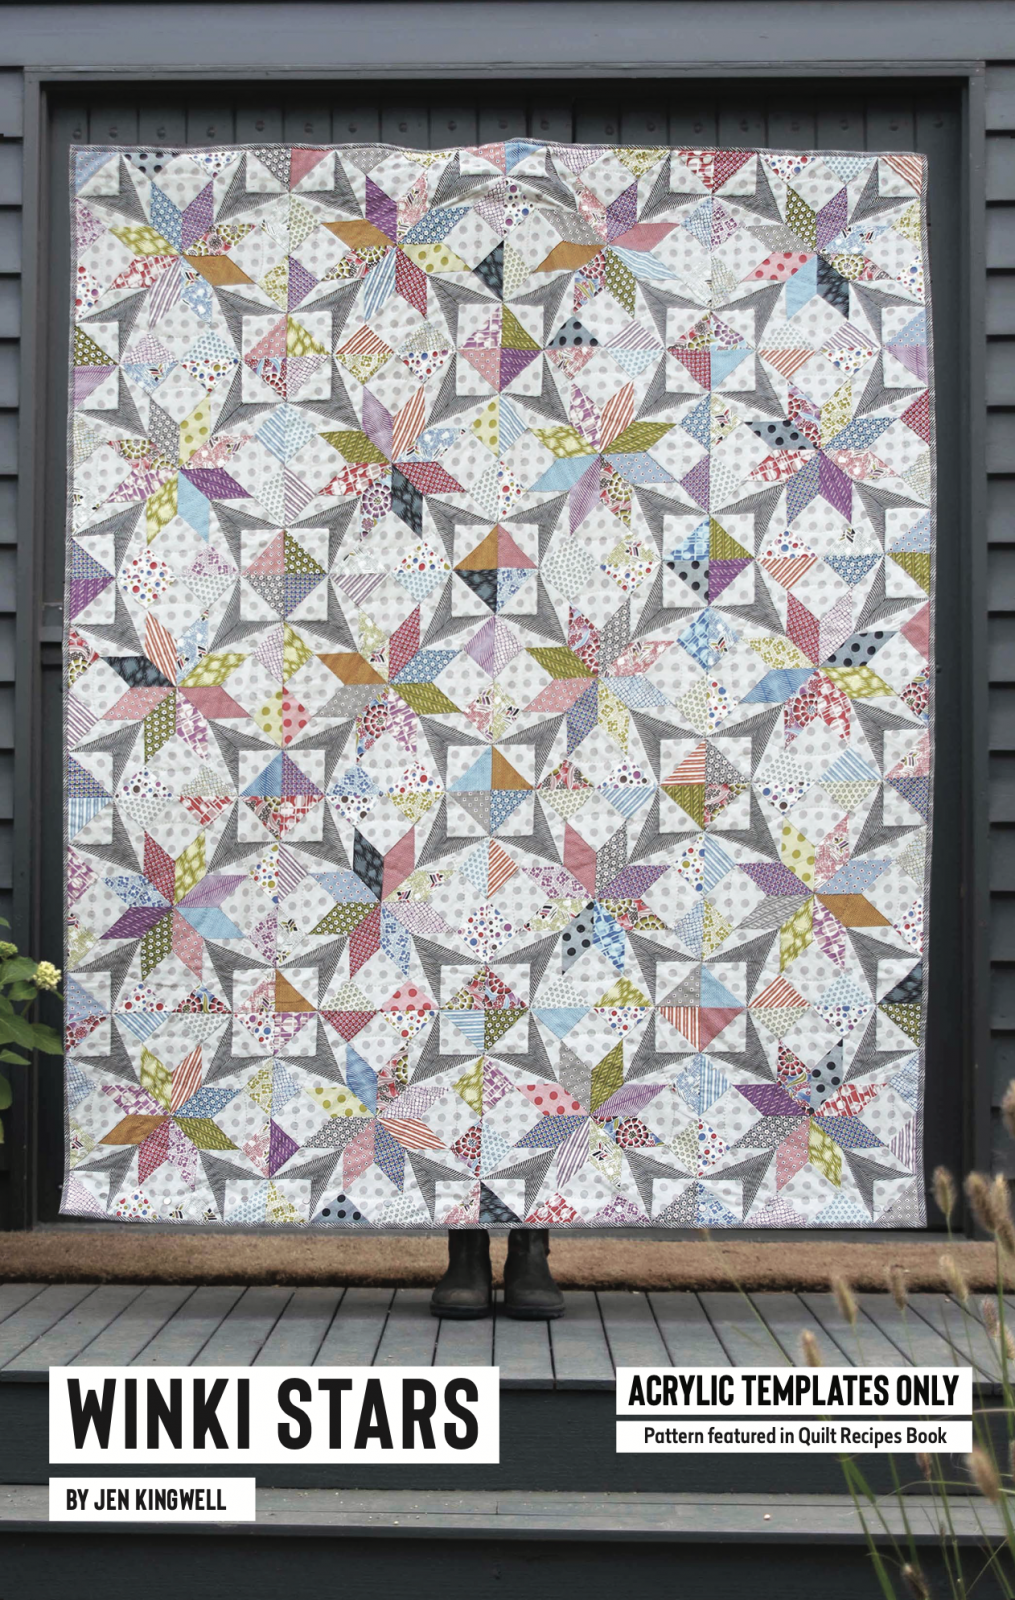 Winki Stars Acrylic Template Only Set from Quilt Recipes by Jen Kingwell